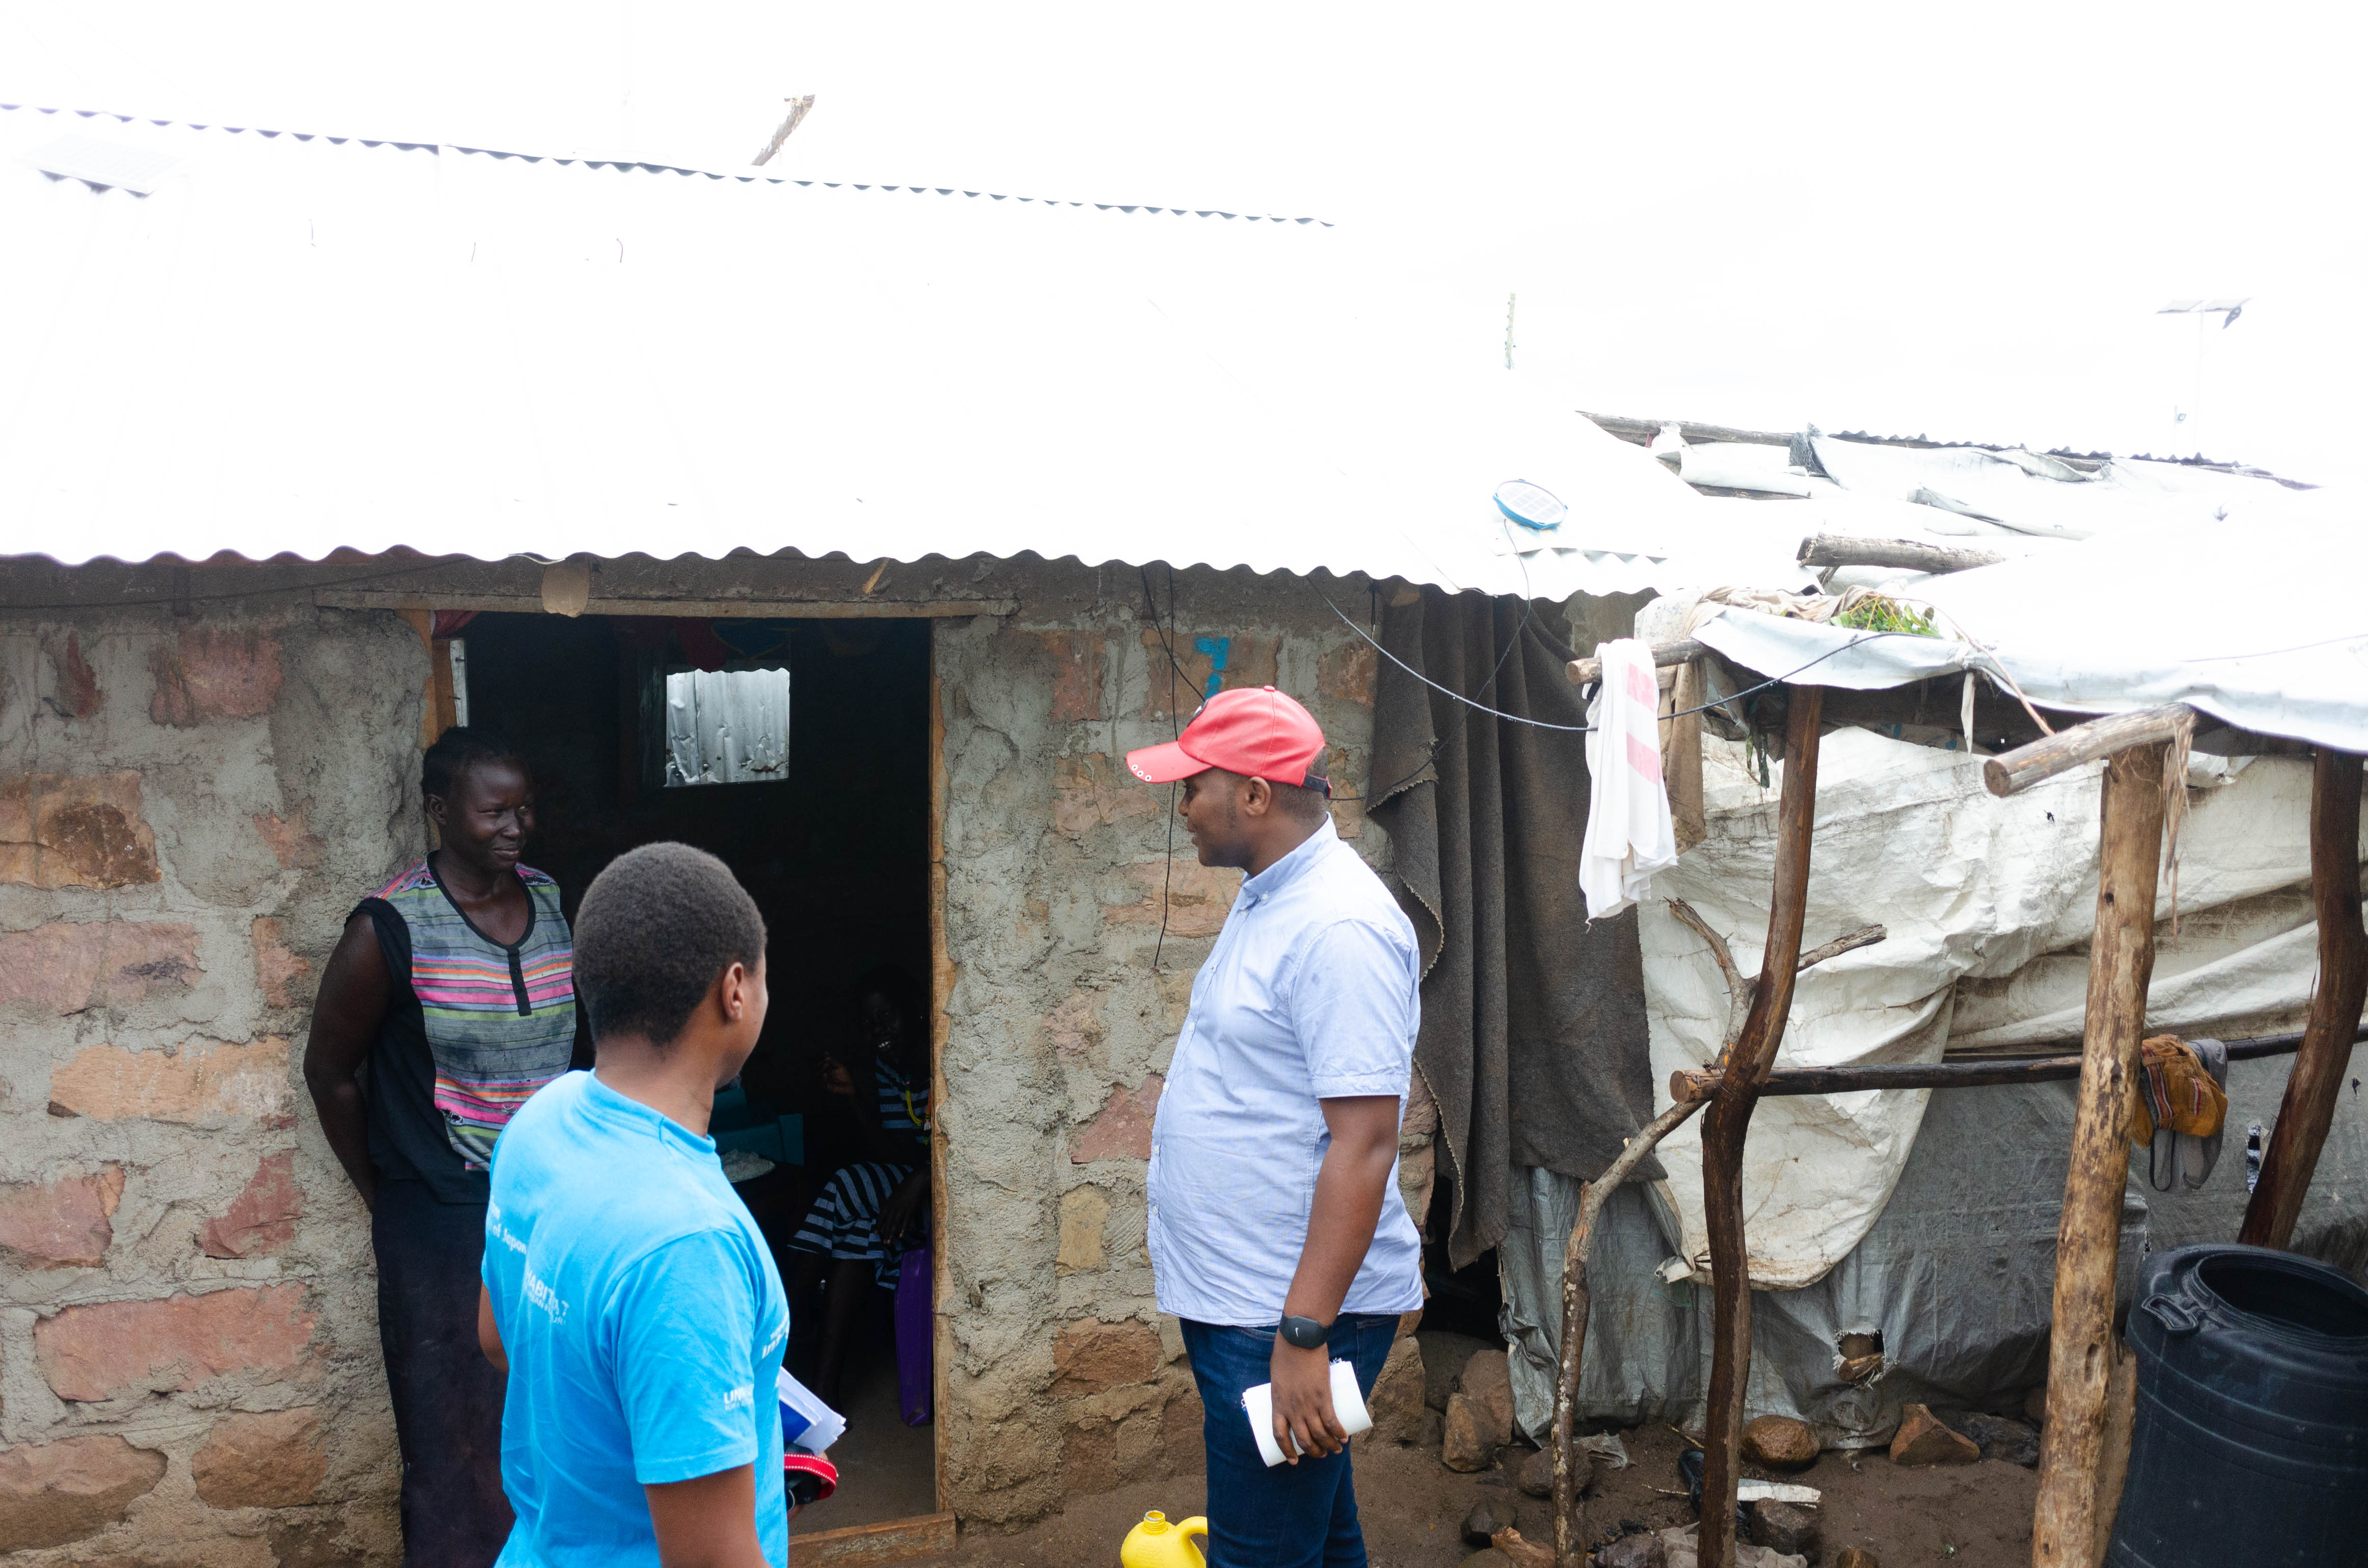 UN-Habitat Kakuma Field Office assessing ground conditions and interviewing residents in the area